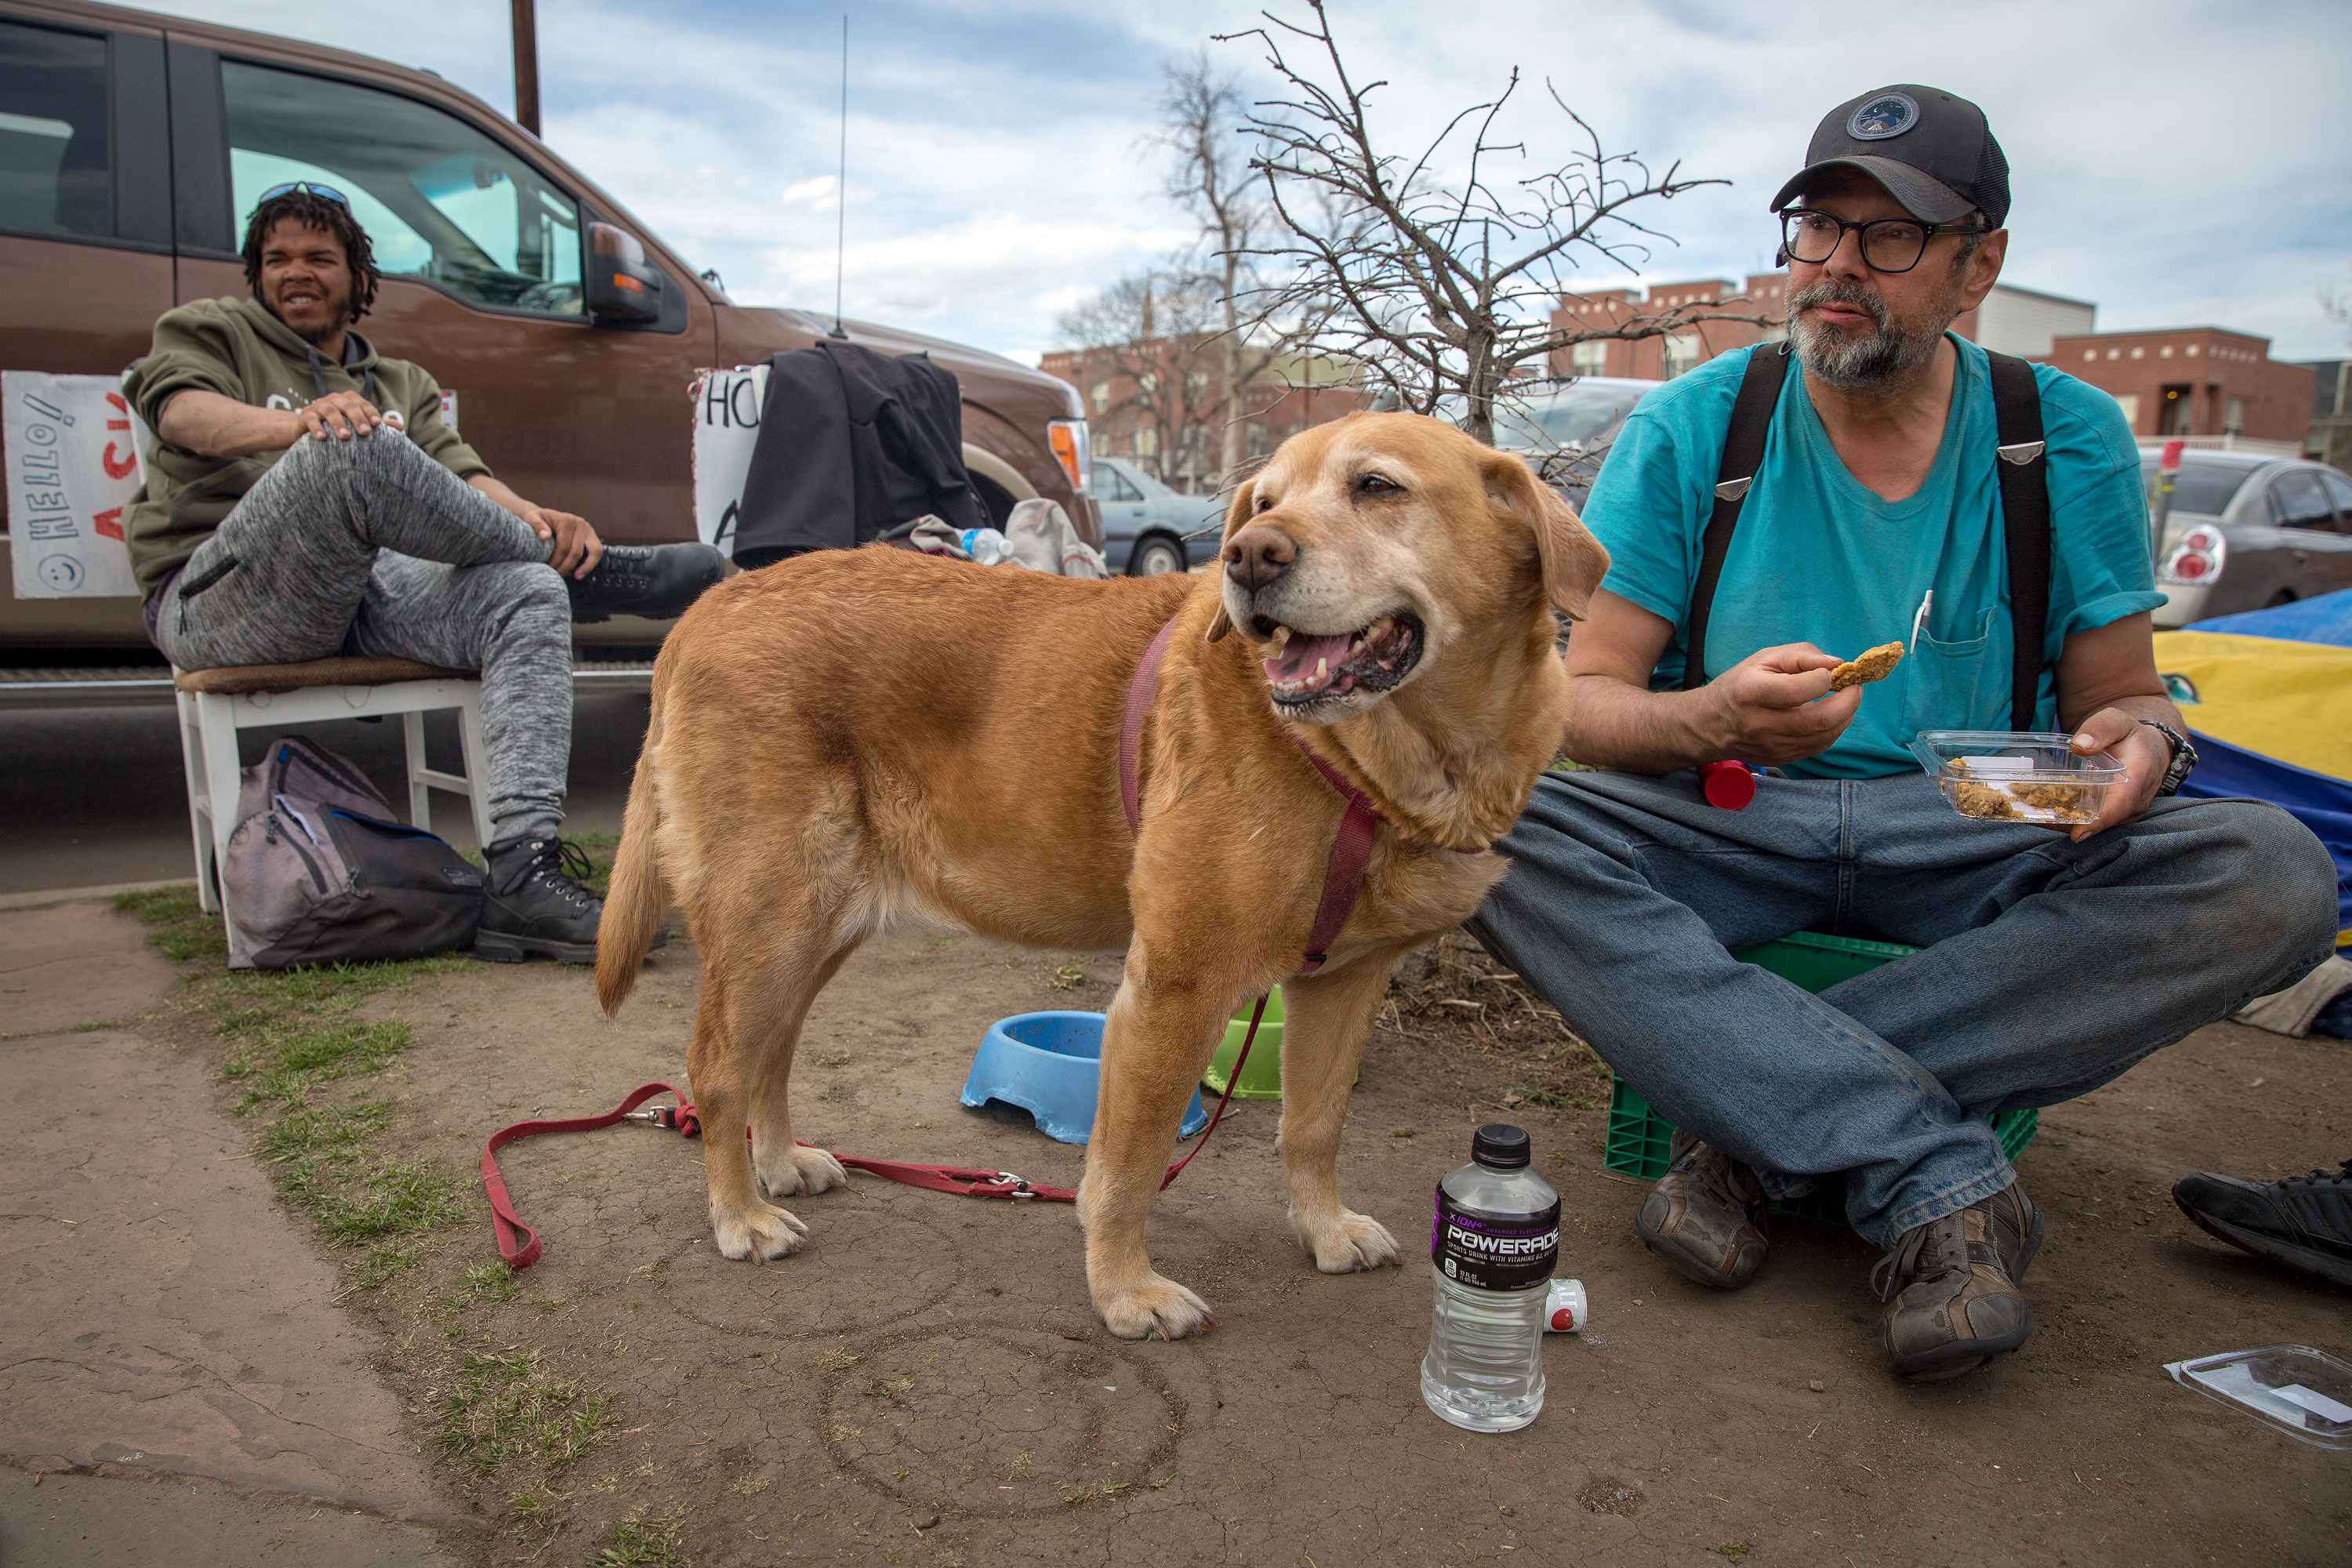 Photo: Denver Homeless Camp Dog 20190405